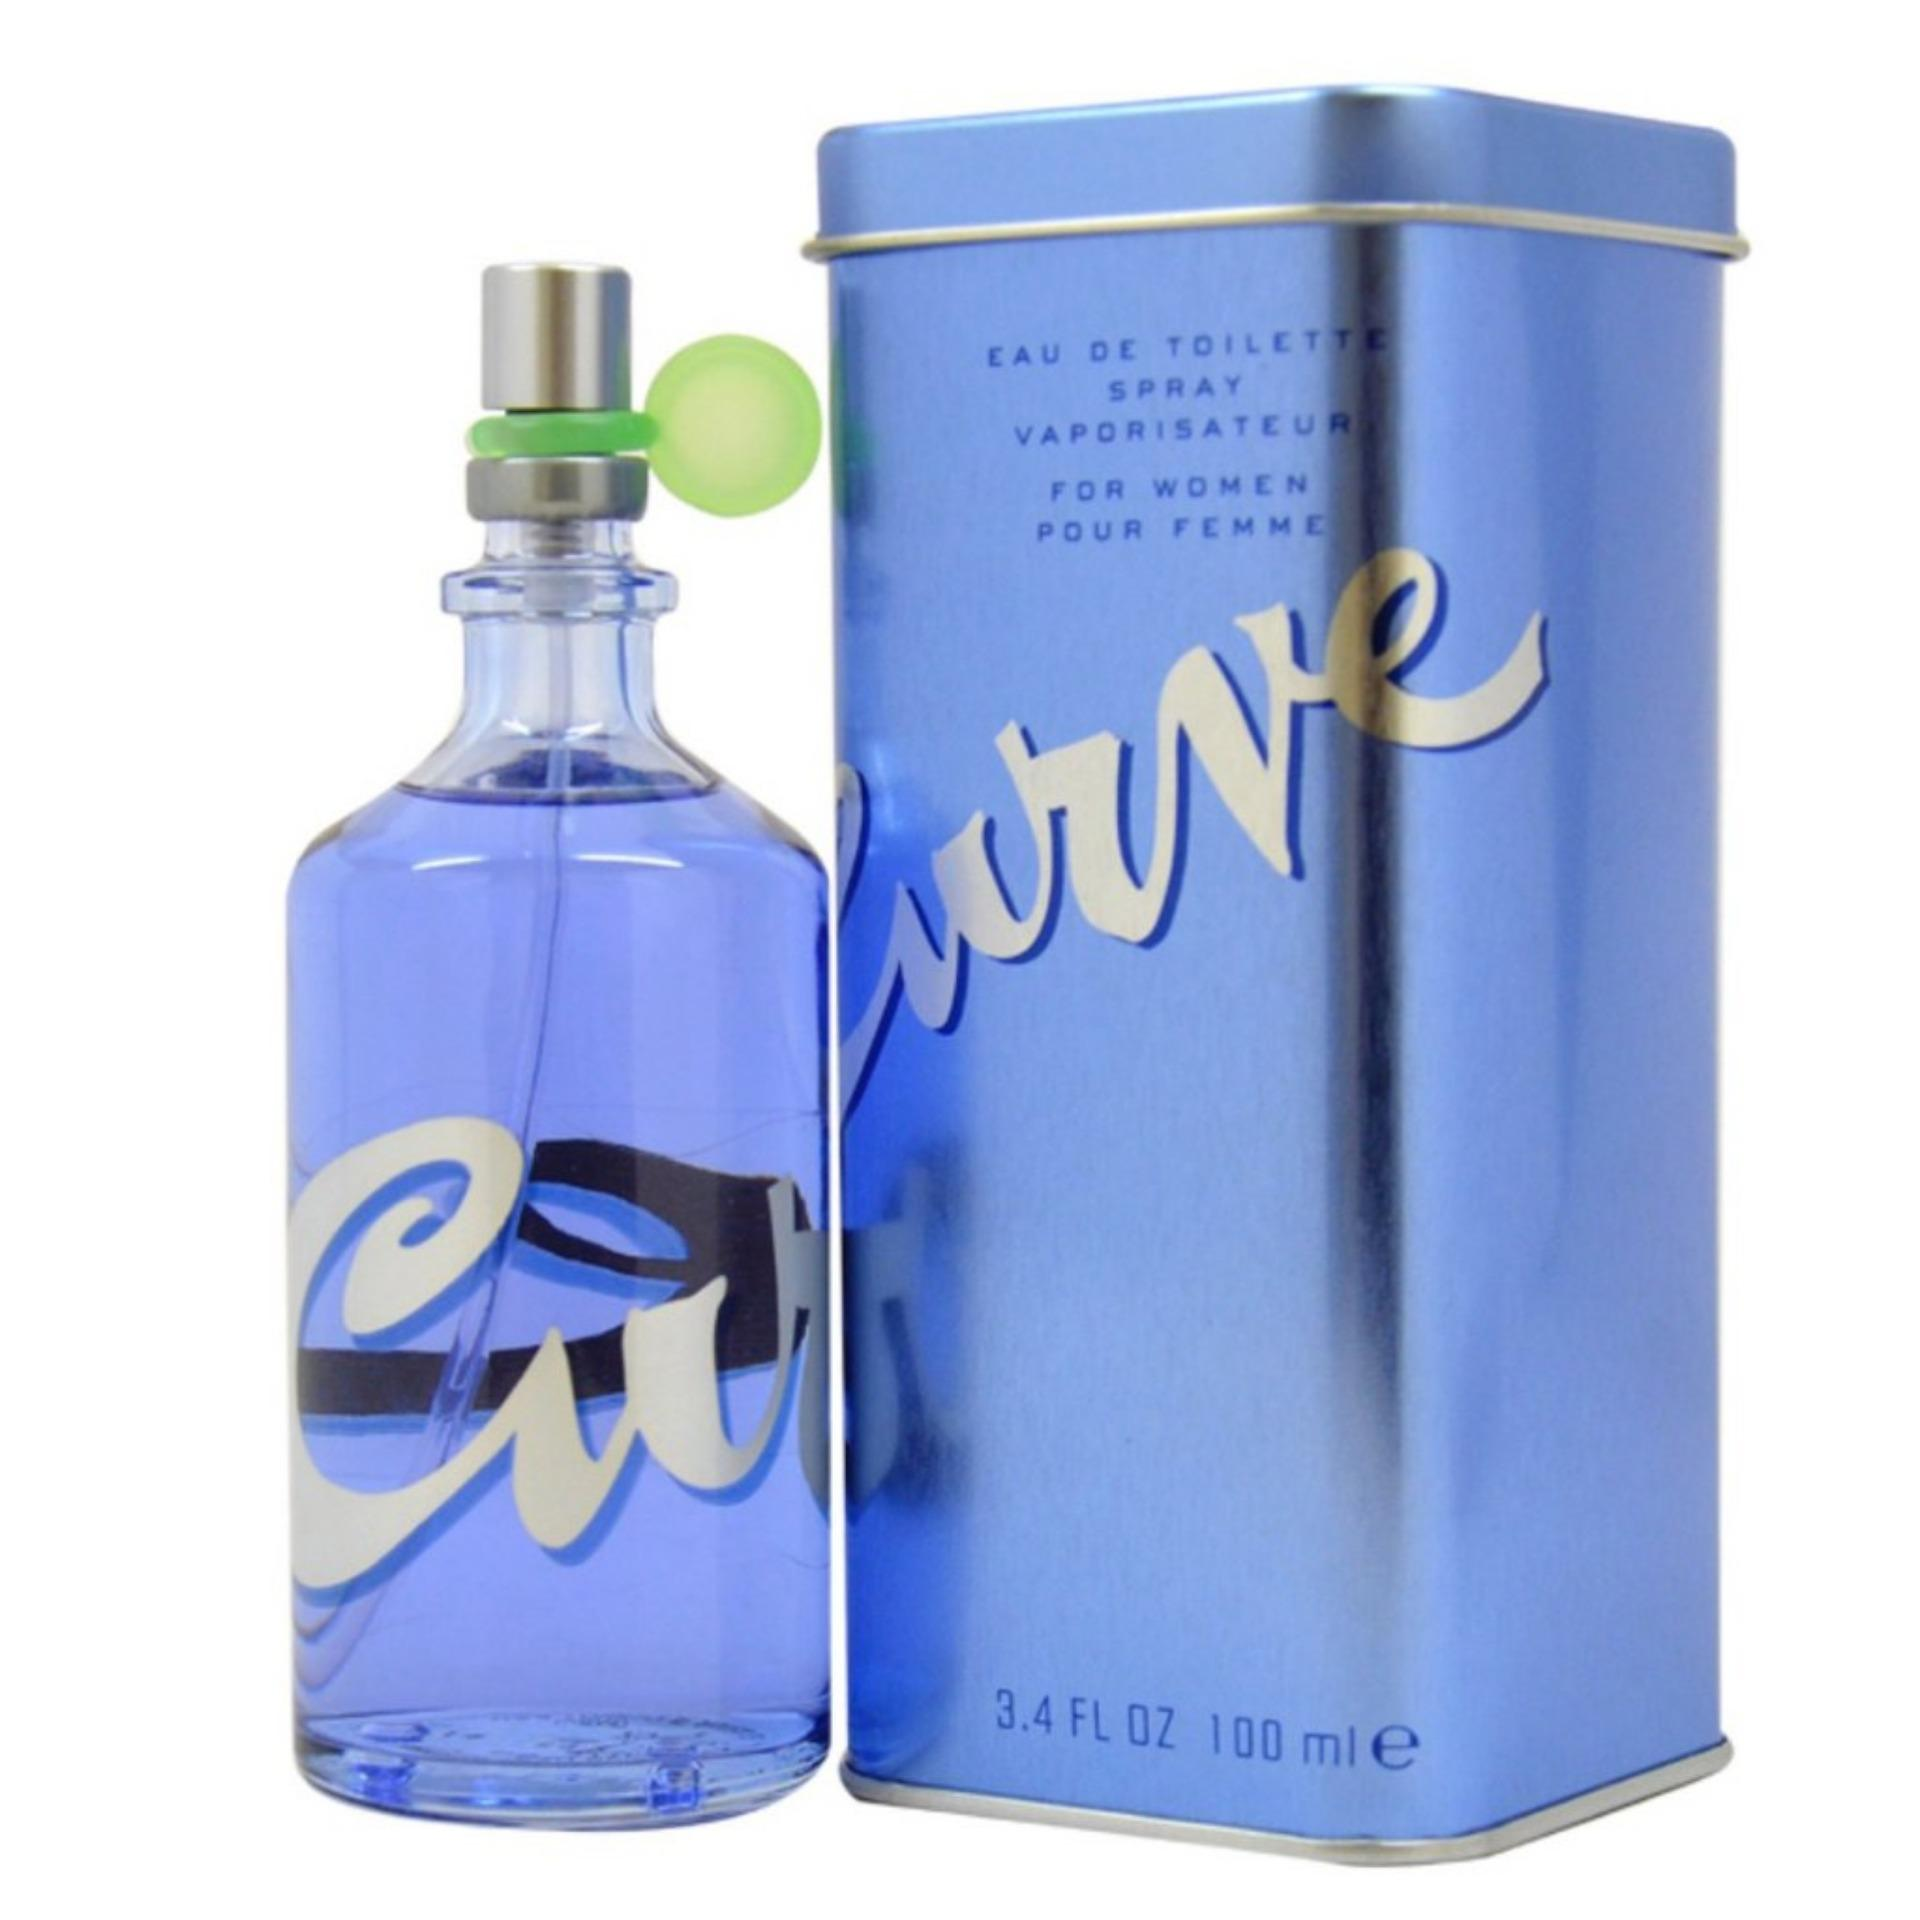 Liz Claiborne Curve Eau De Toilette For Women 100mL